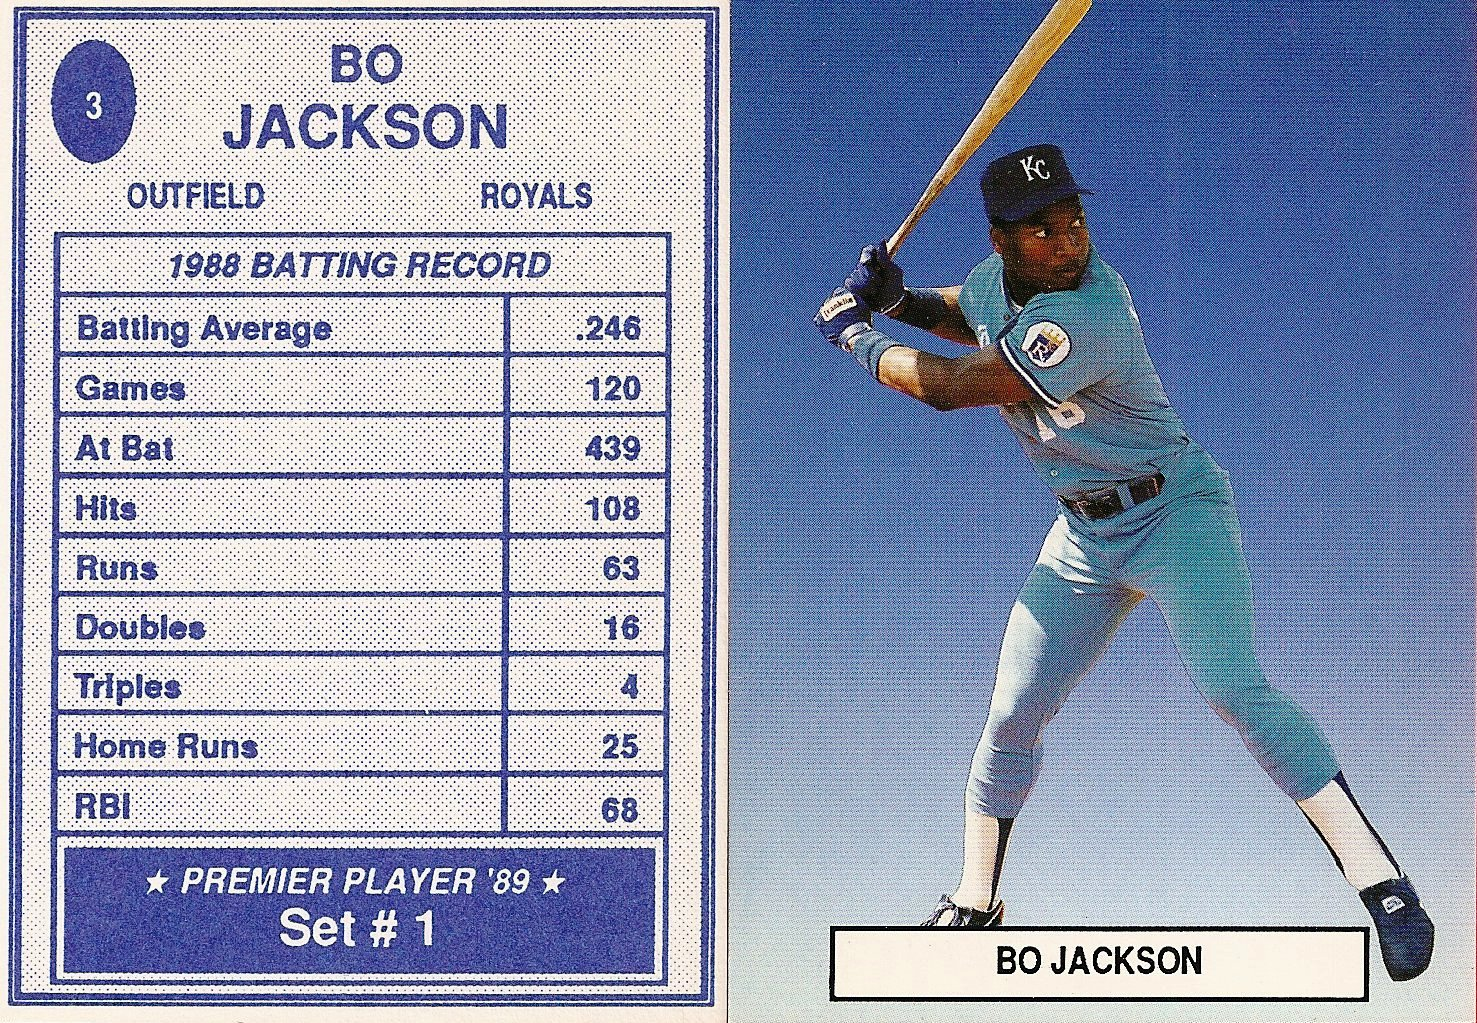 1989 Premier Player Set #1 (blue background)